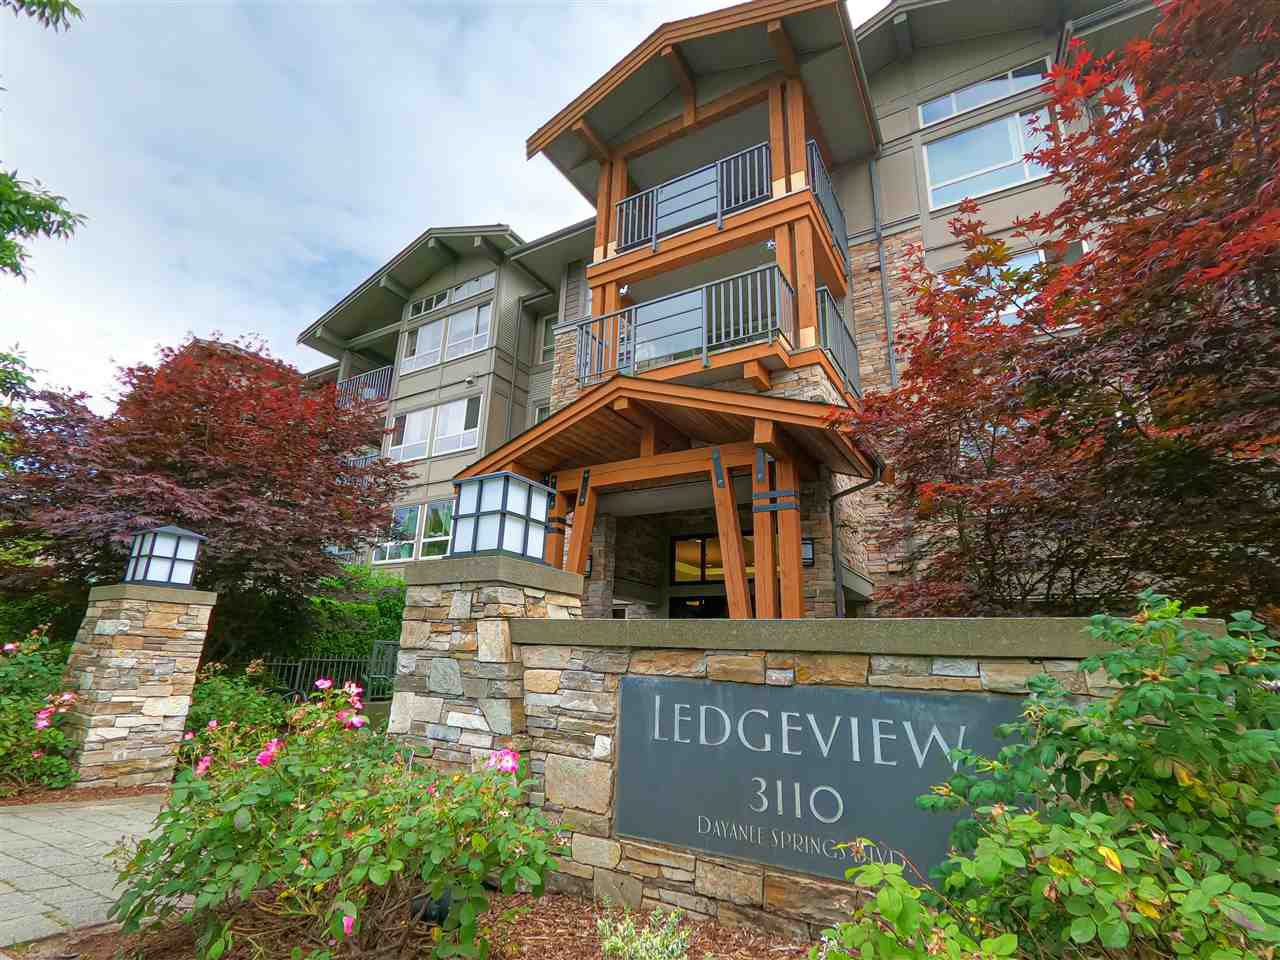 Main Photo: 506 3110 DAYANEE SPRINGS Boulevard in Coquitlam: Westwood Plateau Condo for sale : MLS®# R2478469